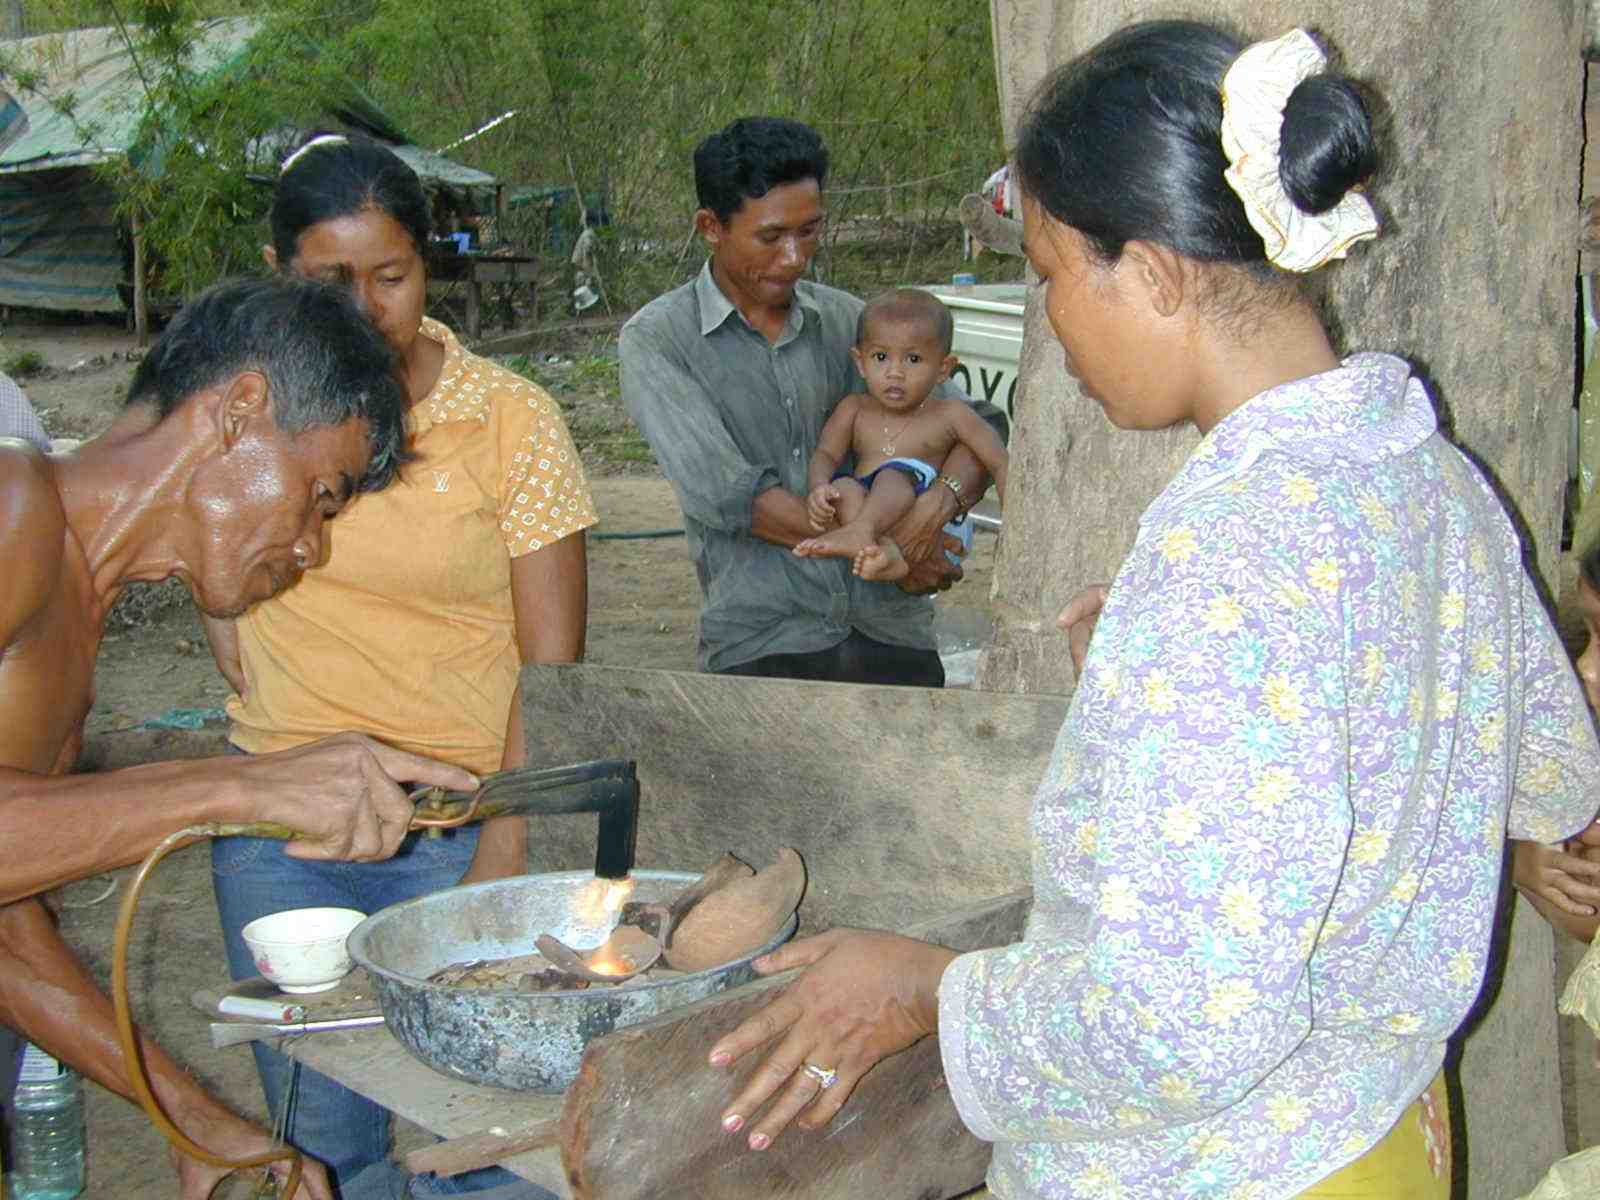 dangers-of-small-scale-gold-mining-thailand-photo-by-tom-murphy-and-blacksmith-institute-sml